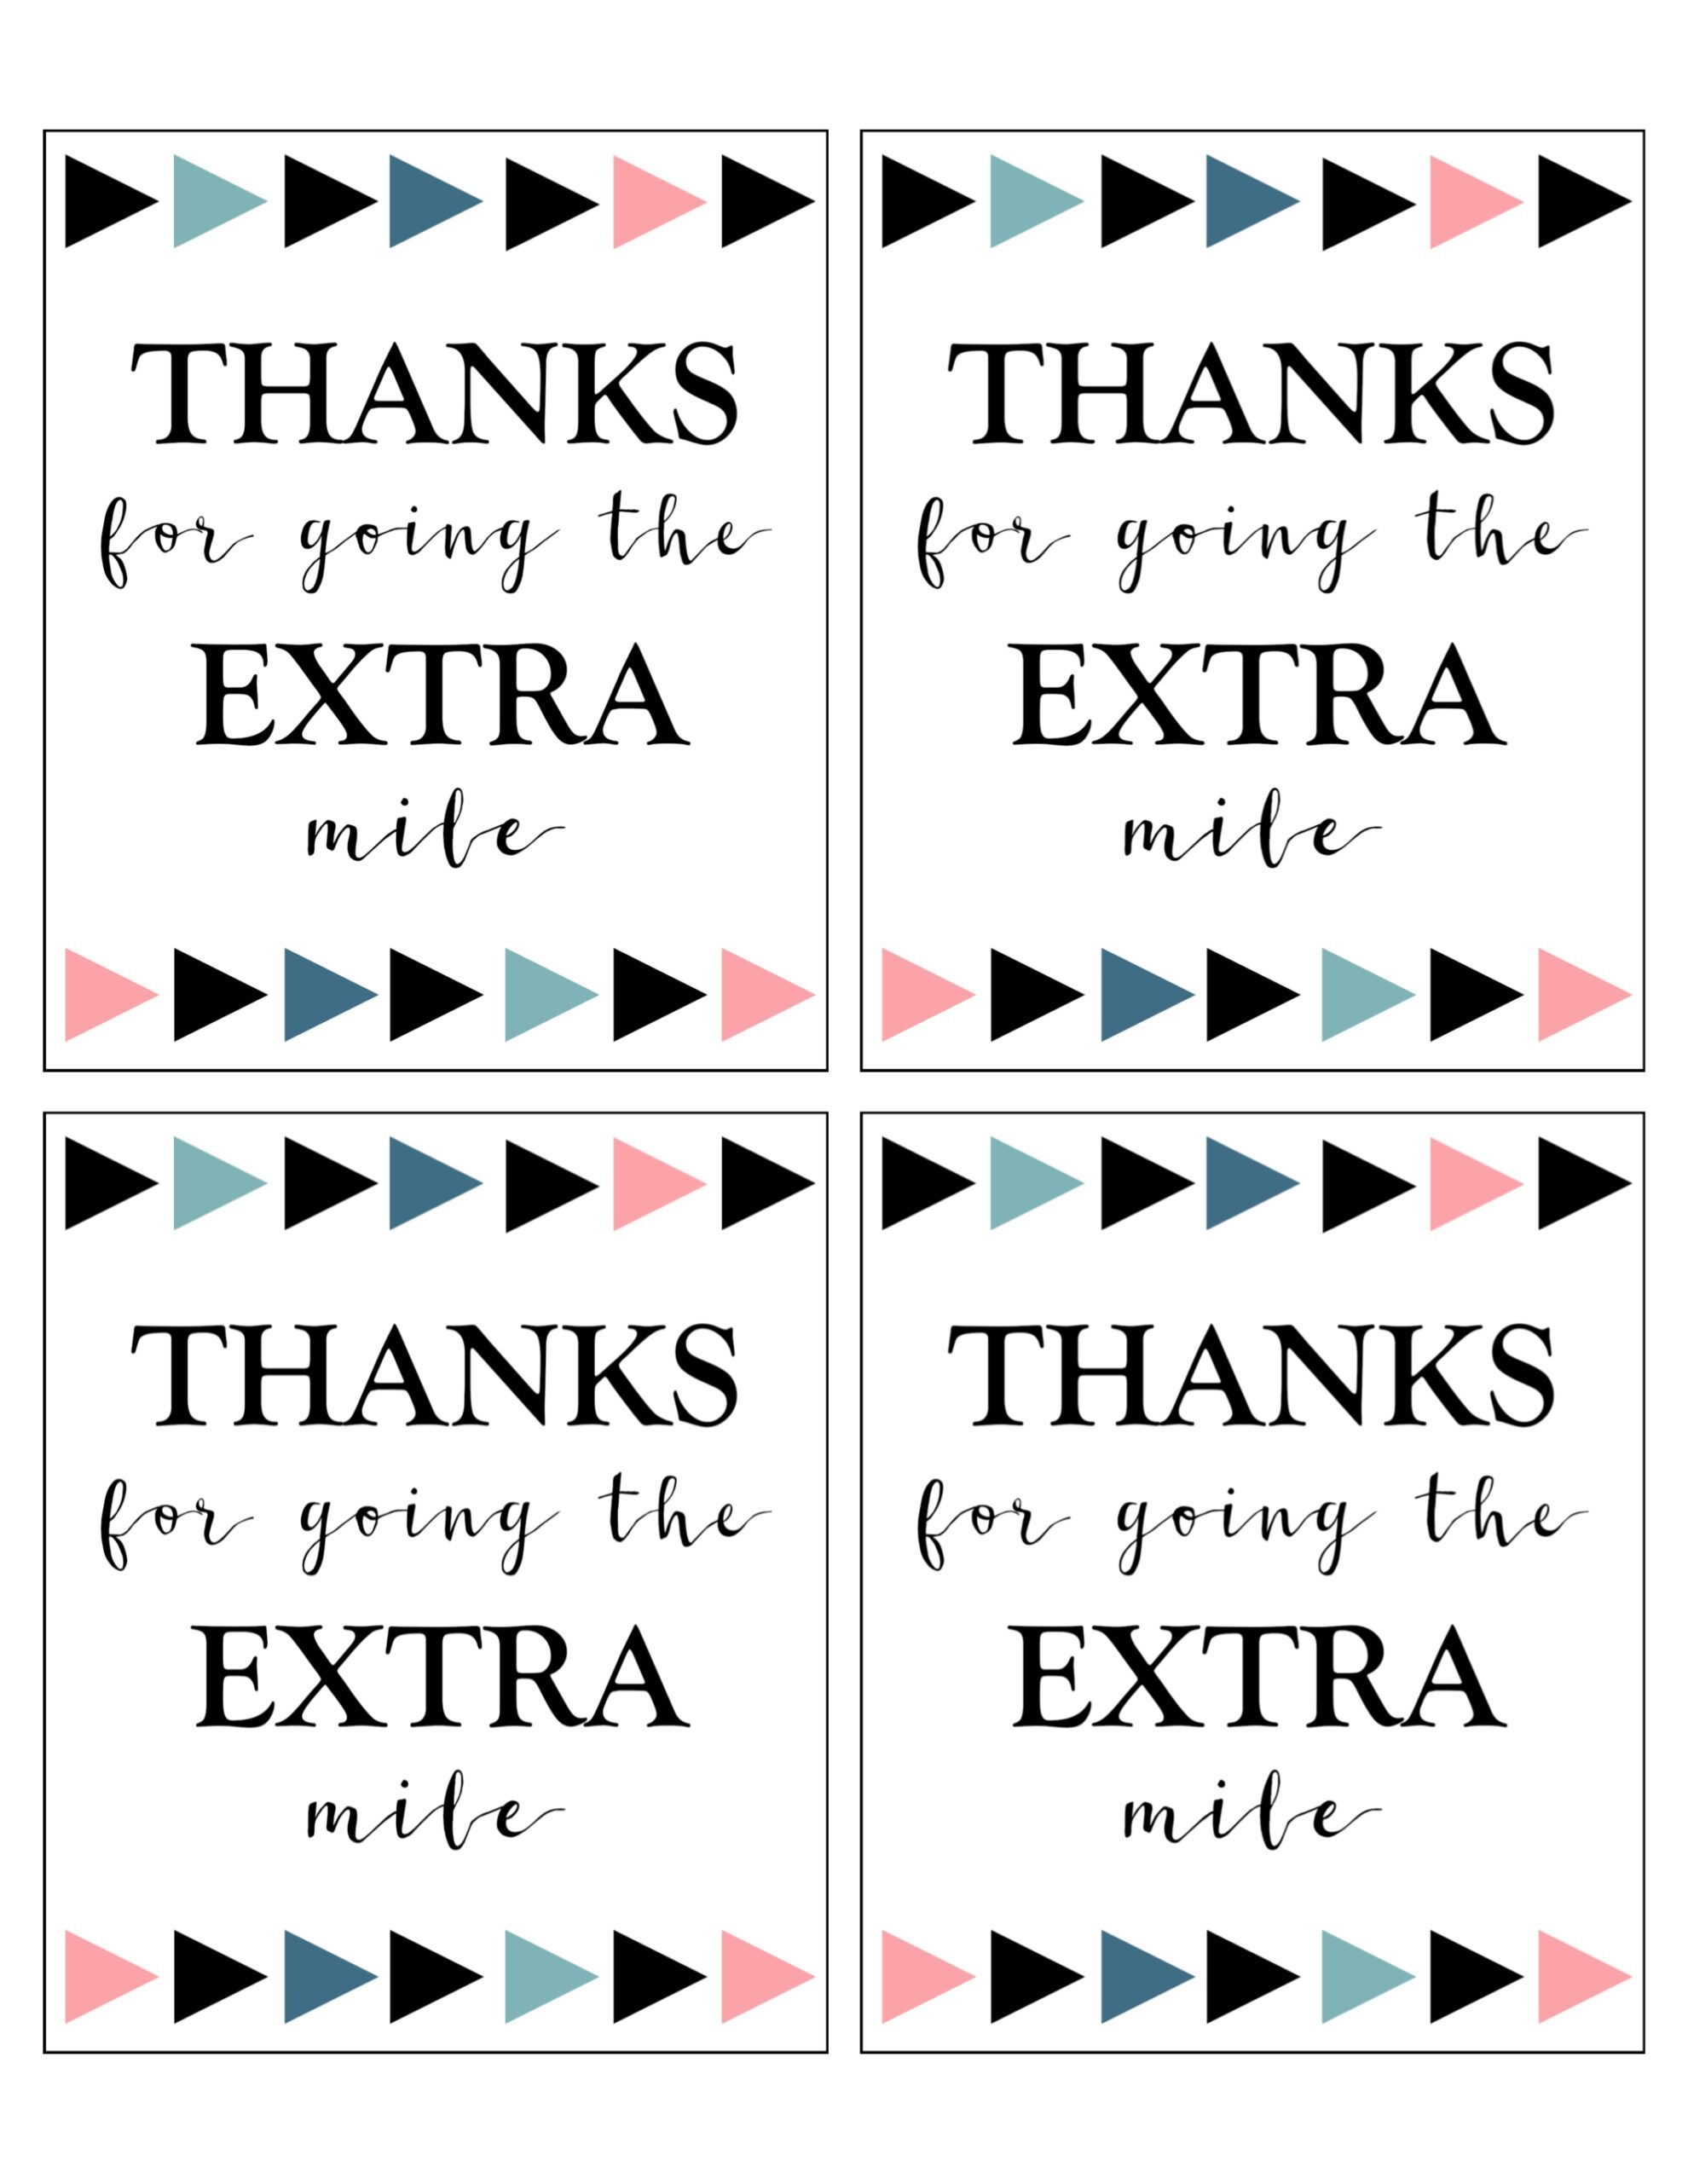 Extra Gum Thank You Printable - Paper Trail Design - Free Printable Volunteer Thank You Cards